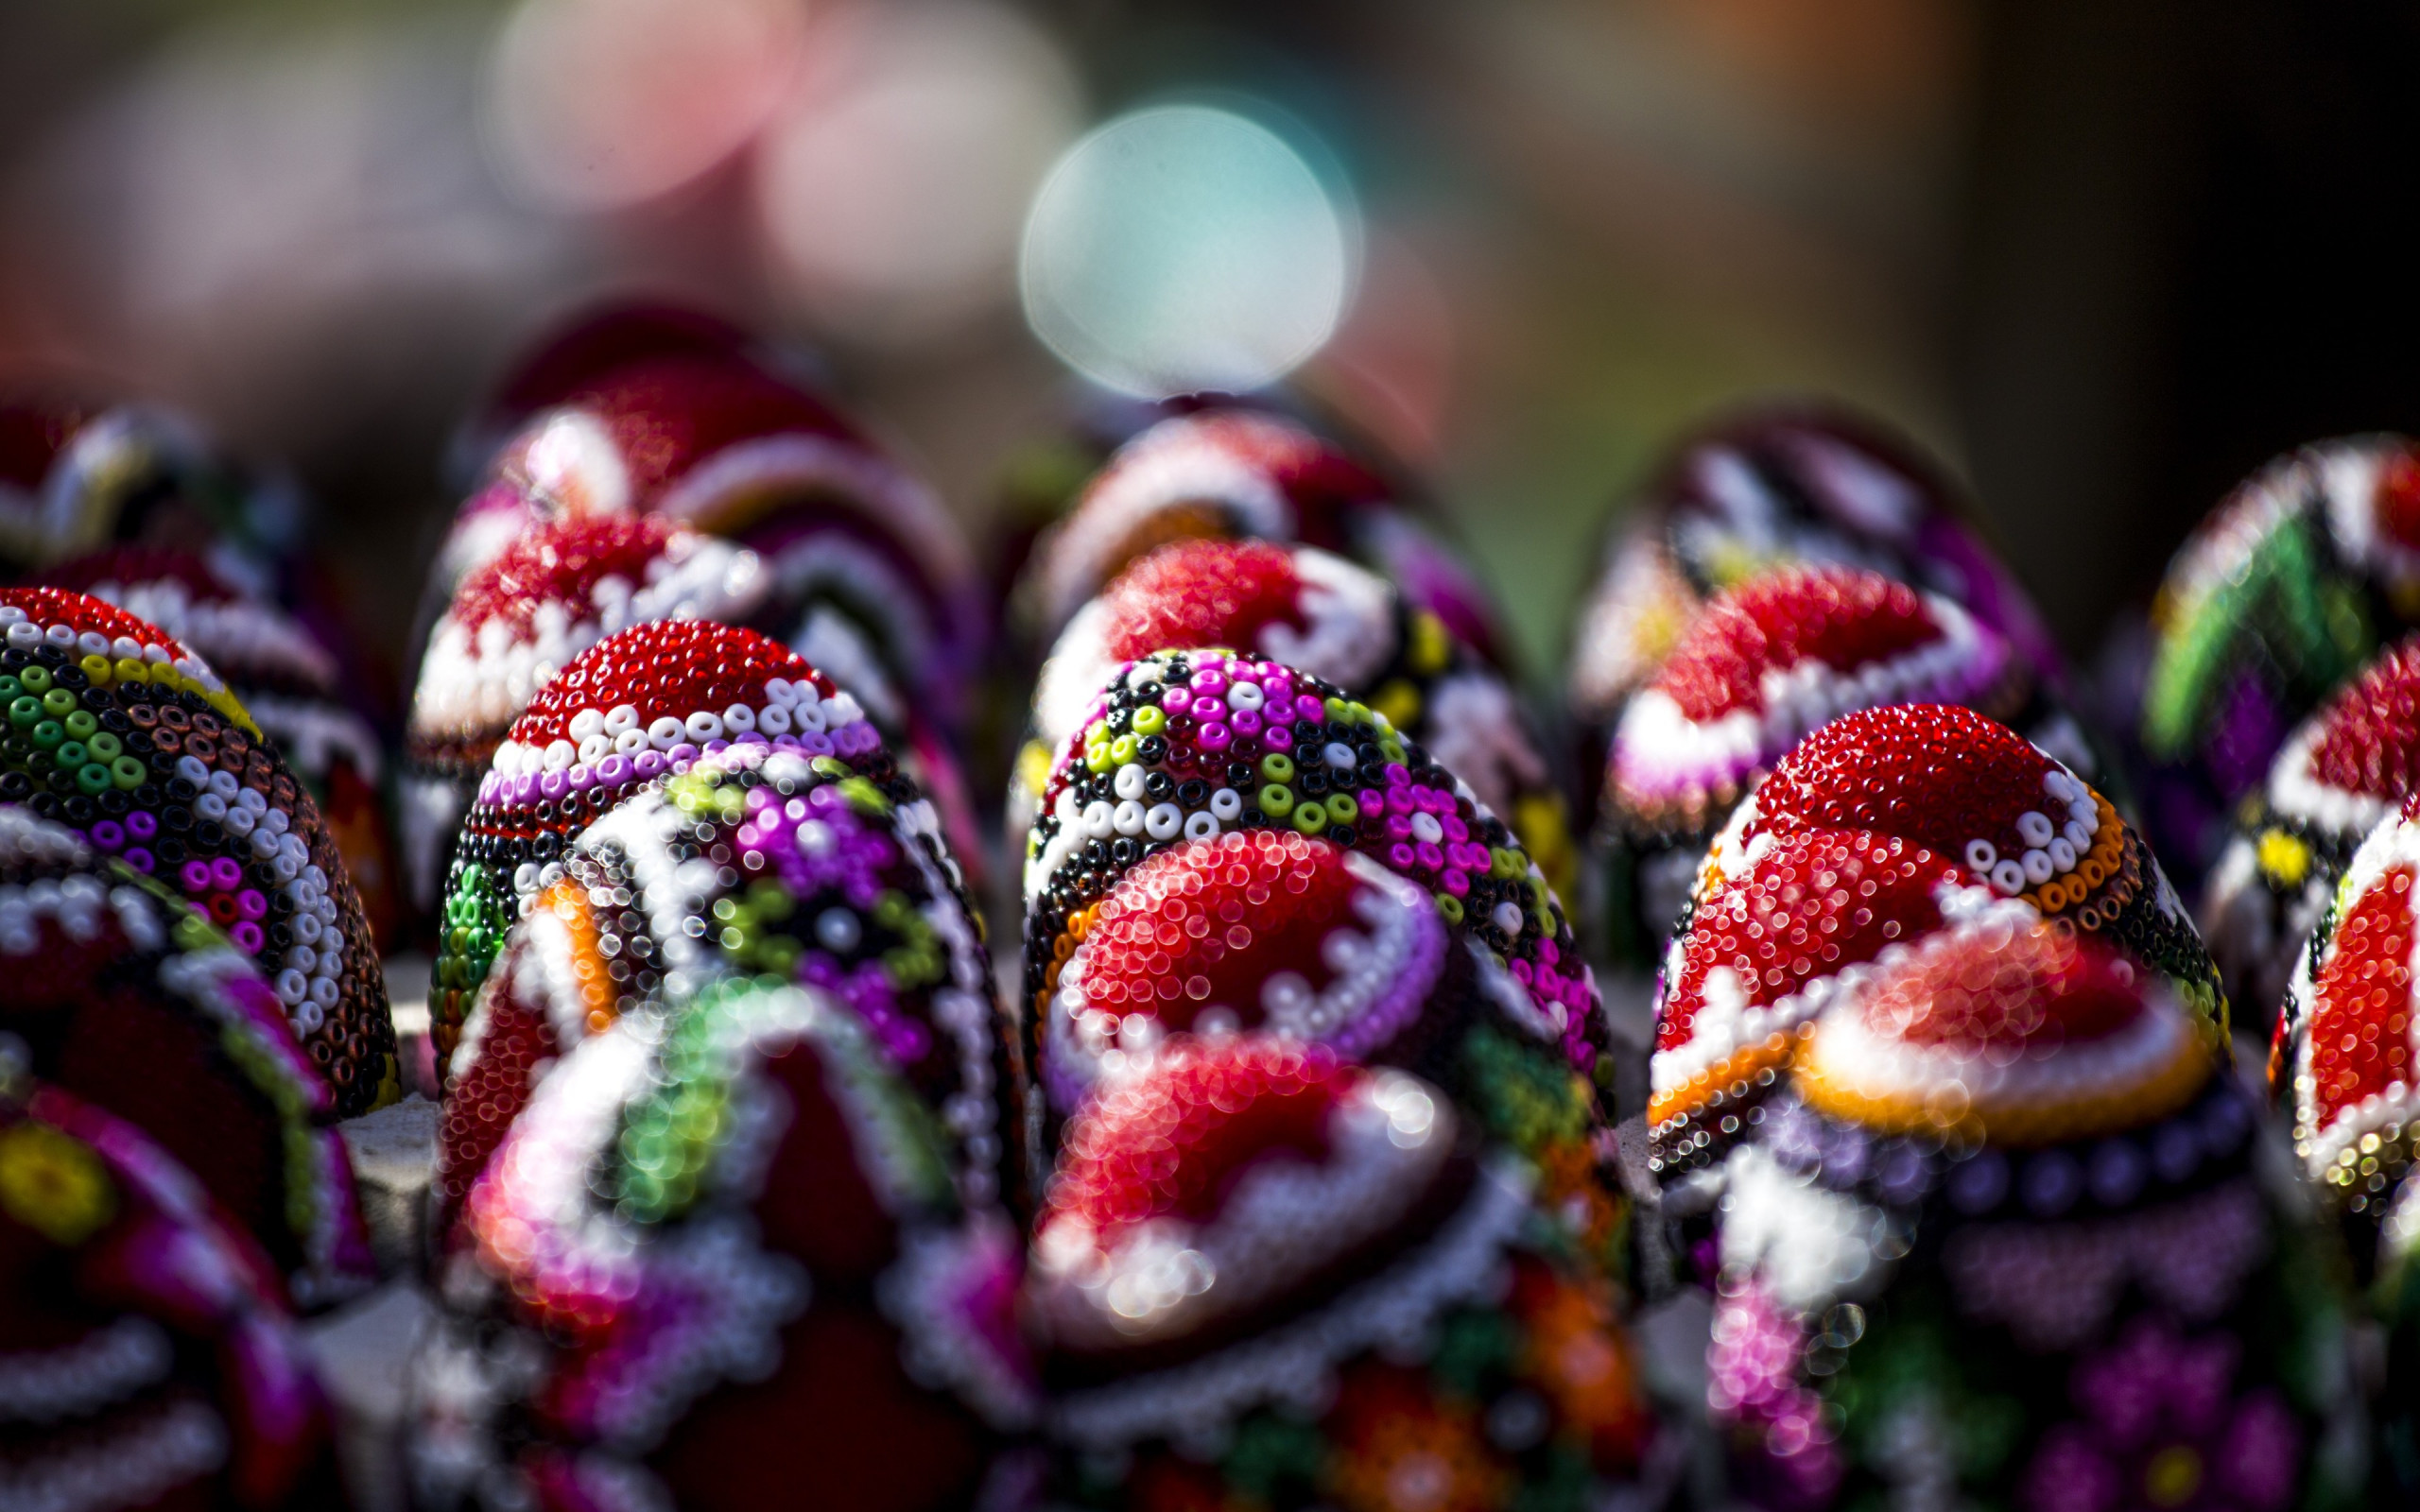 Easter eggs from Bucovina, Romania | 2560x1600 wallpaper